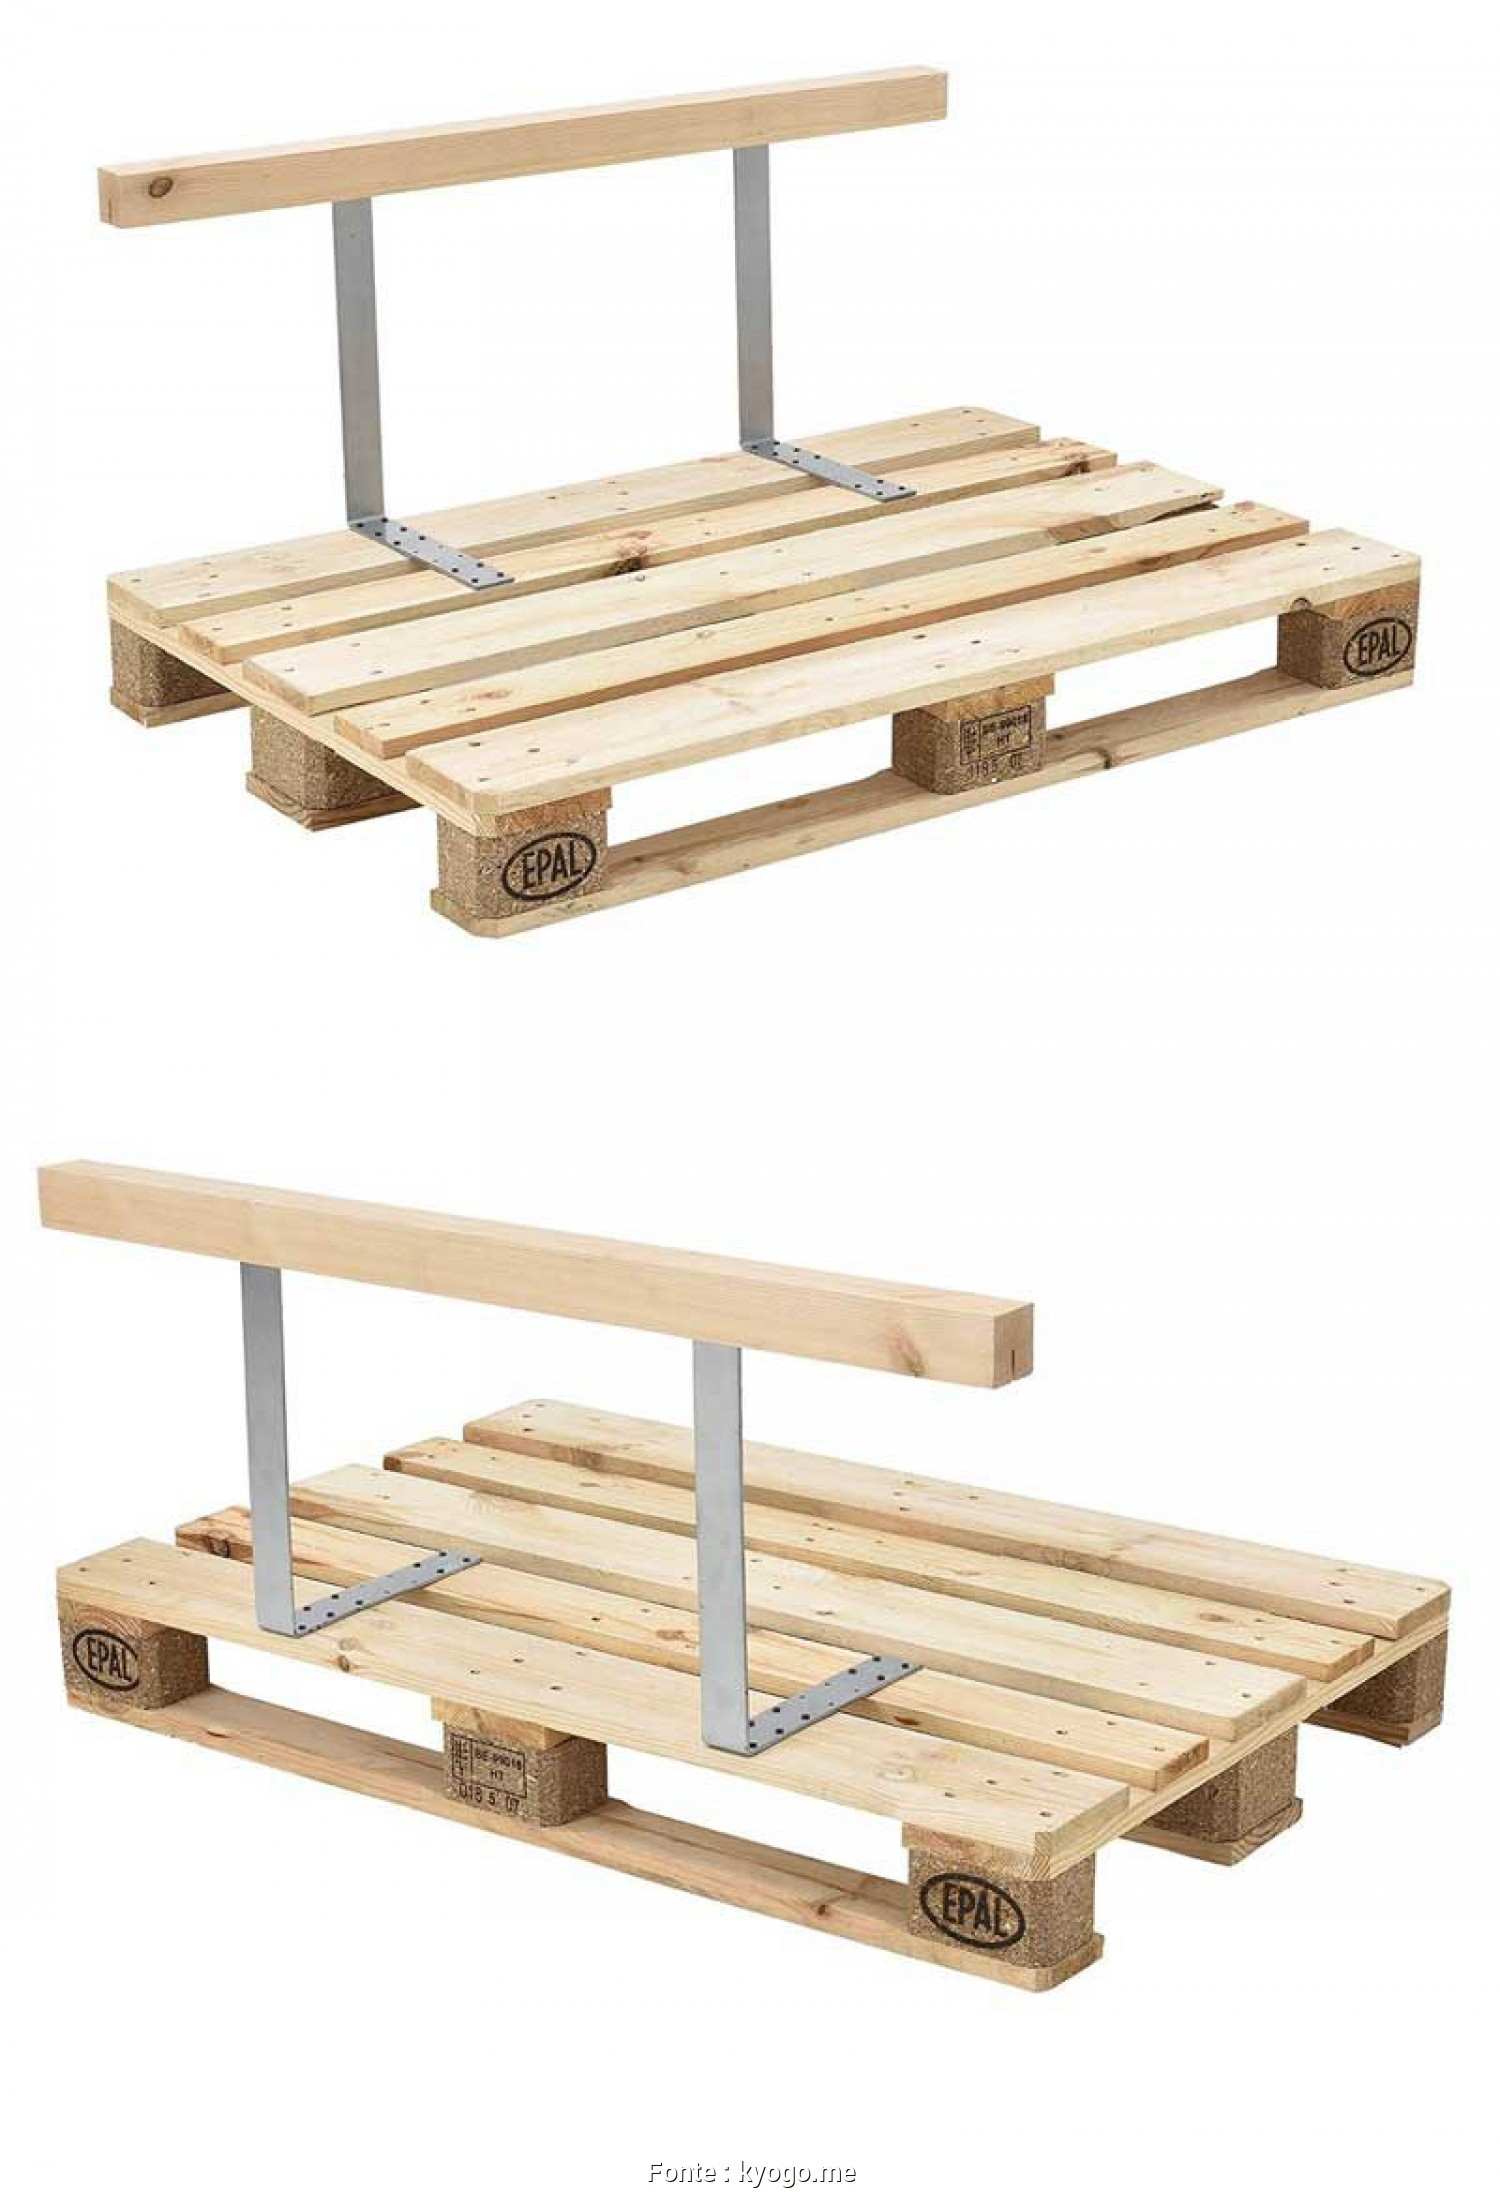 Progetto, Divano In Pallet, Bella ... Large Size Of Divano, I Pallet Fare Divano, I Pallet Divani Fatti, I